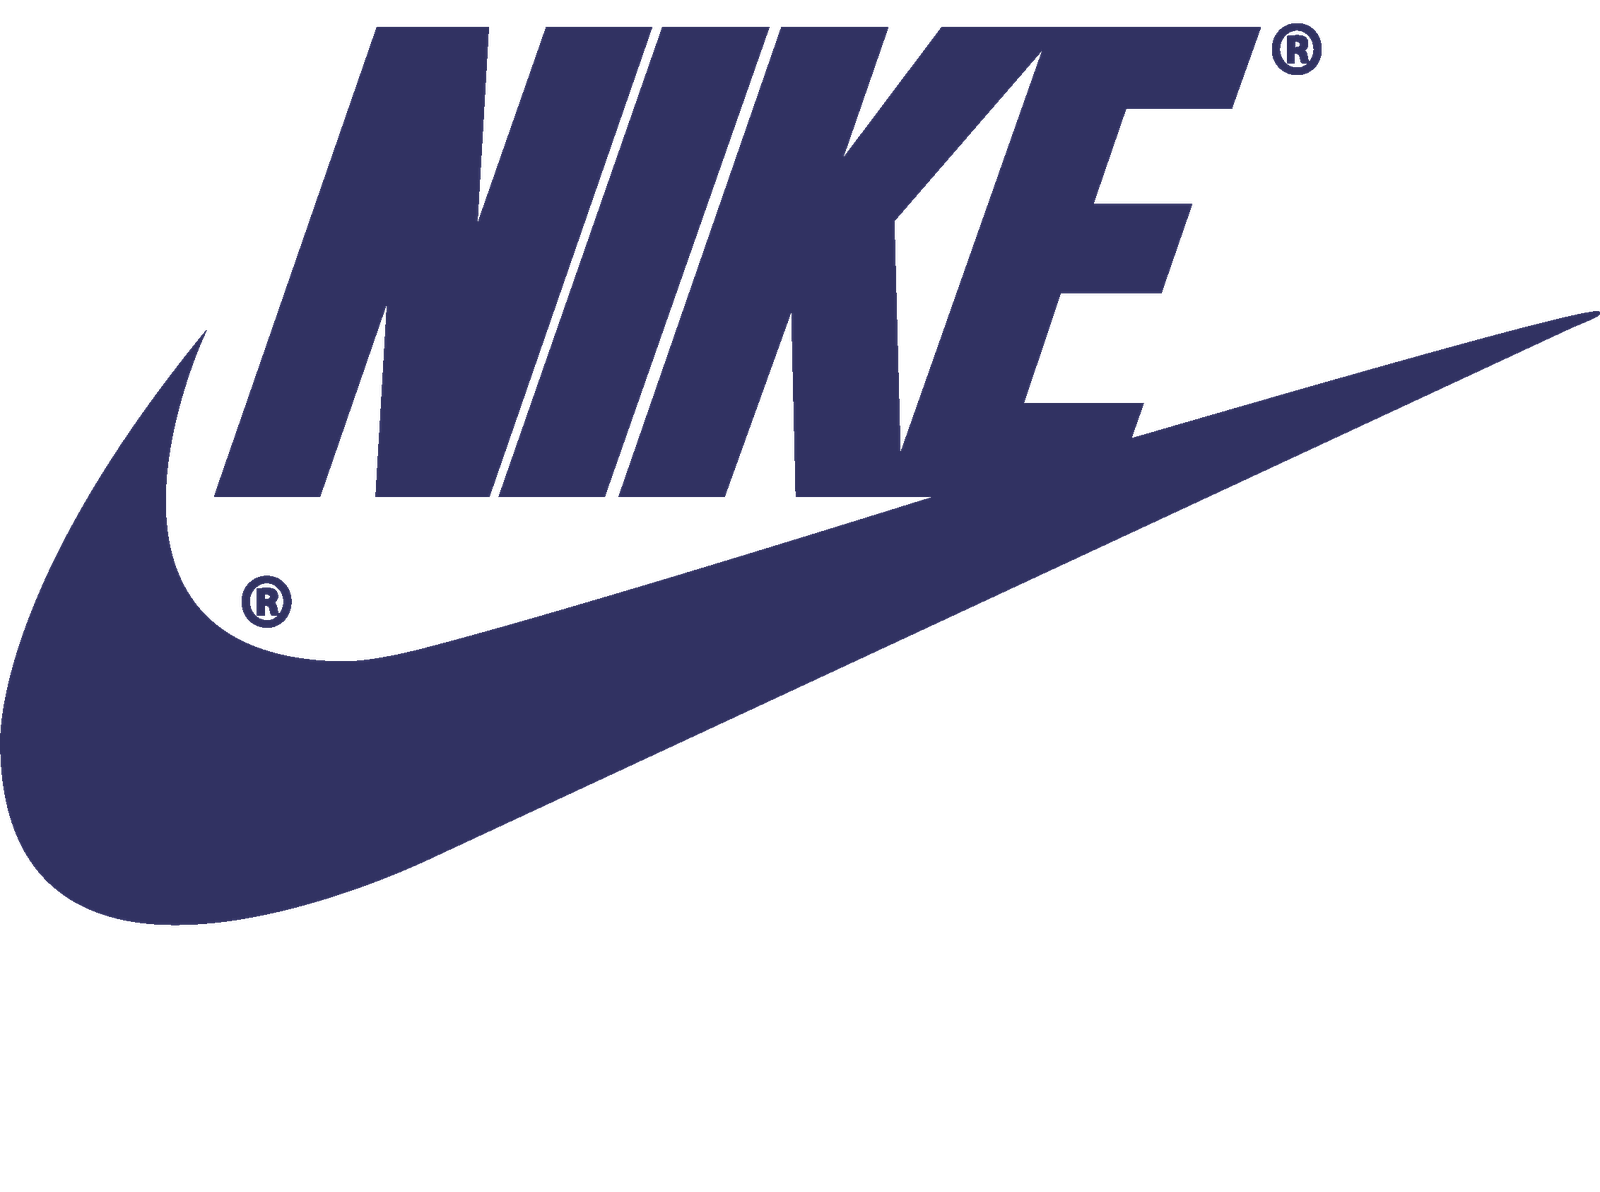 nike brand, sportswear, shoes, clothing png images #15